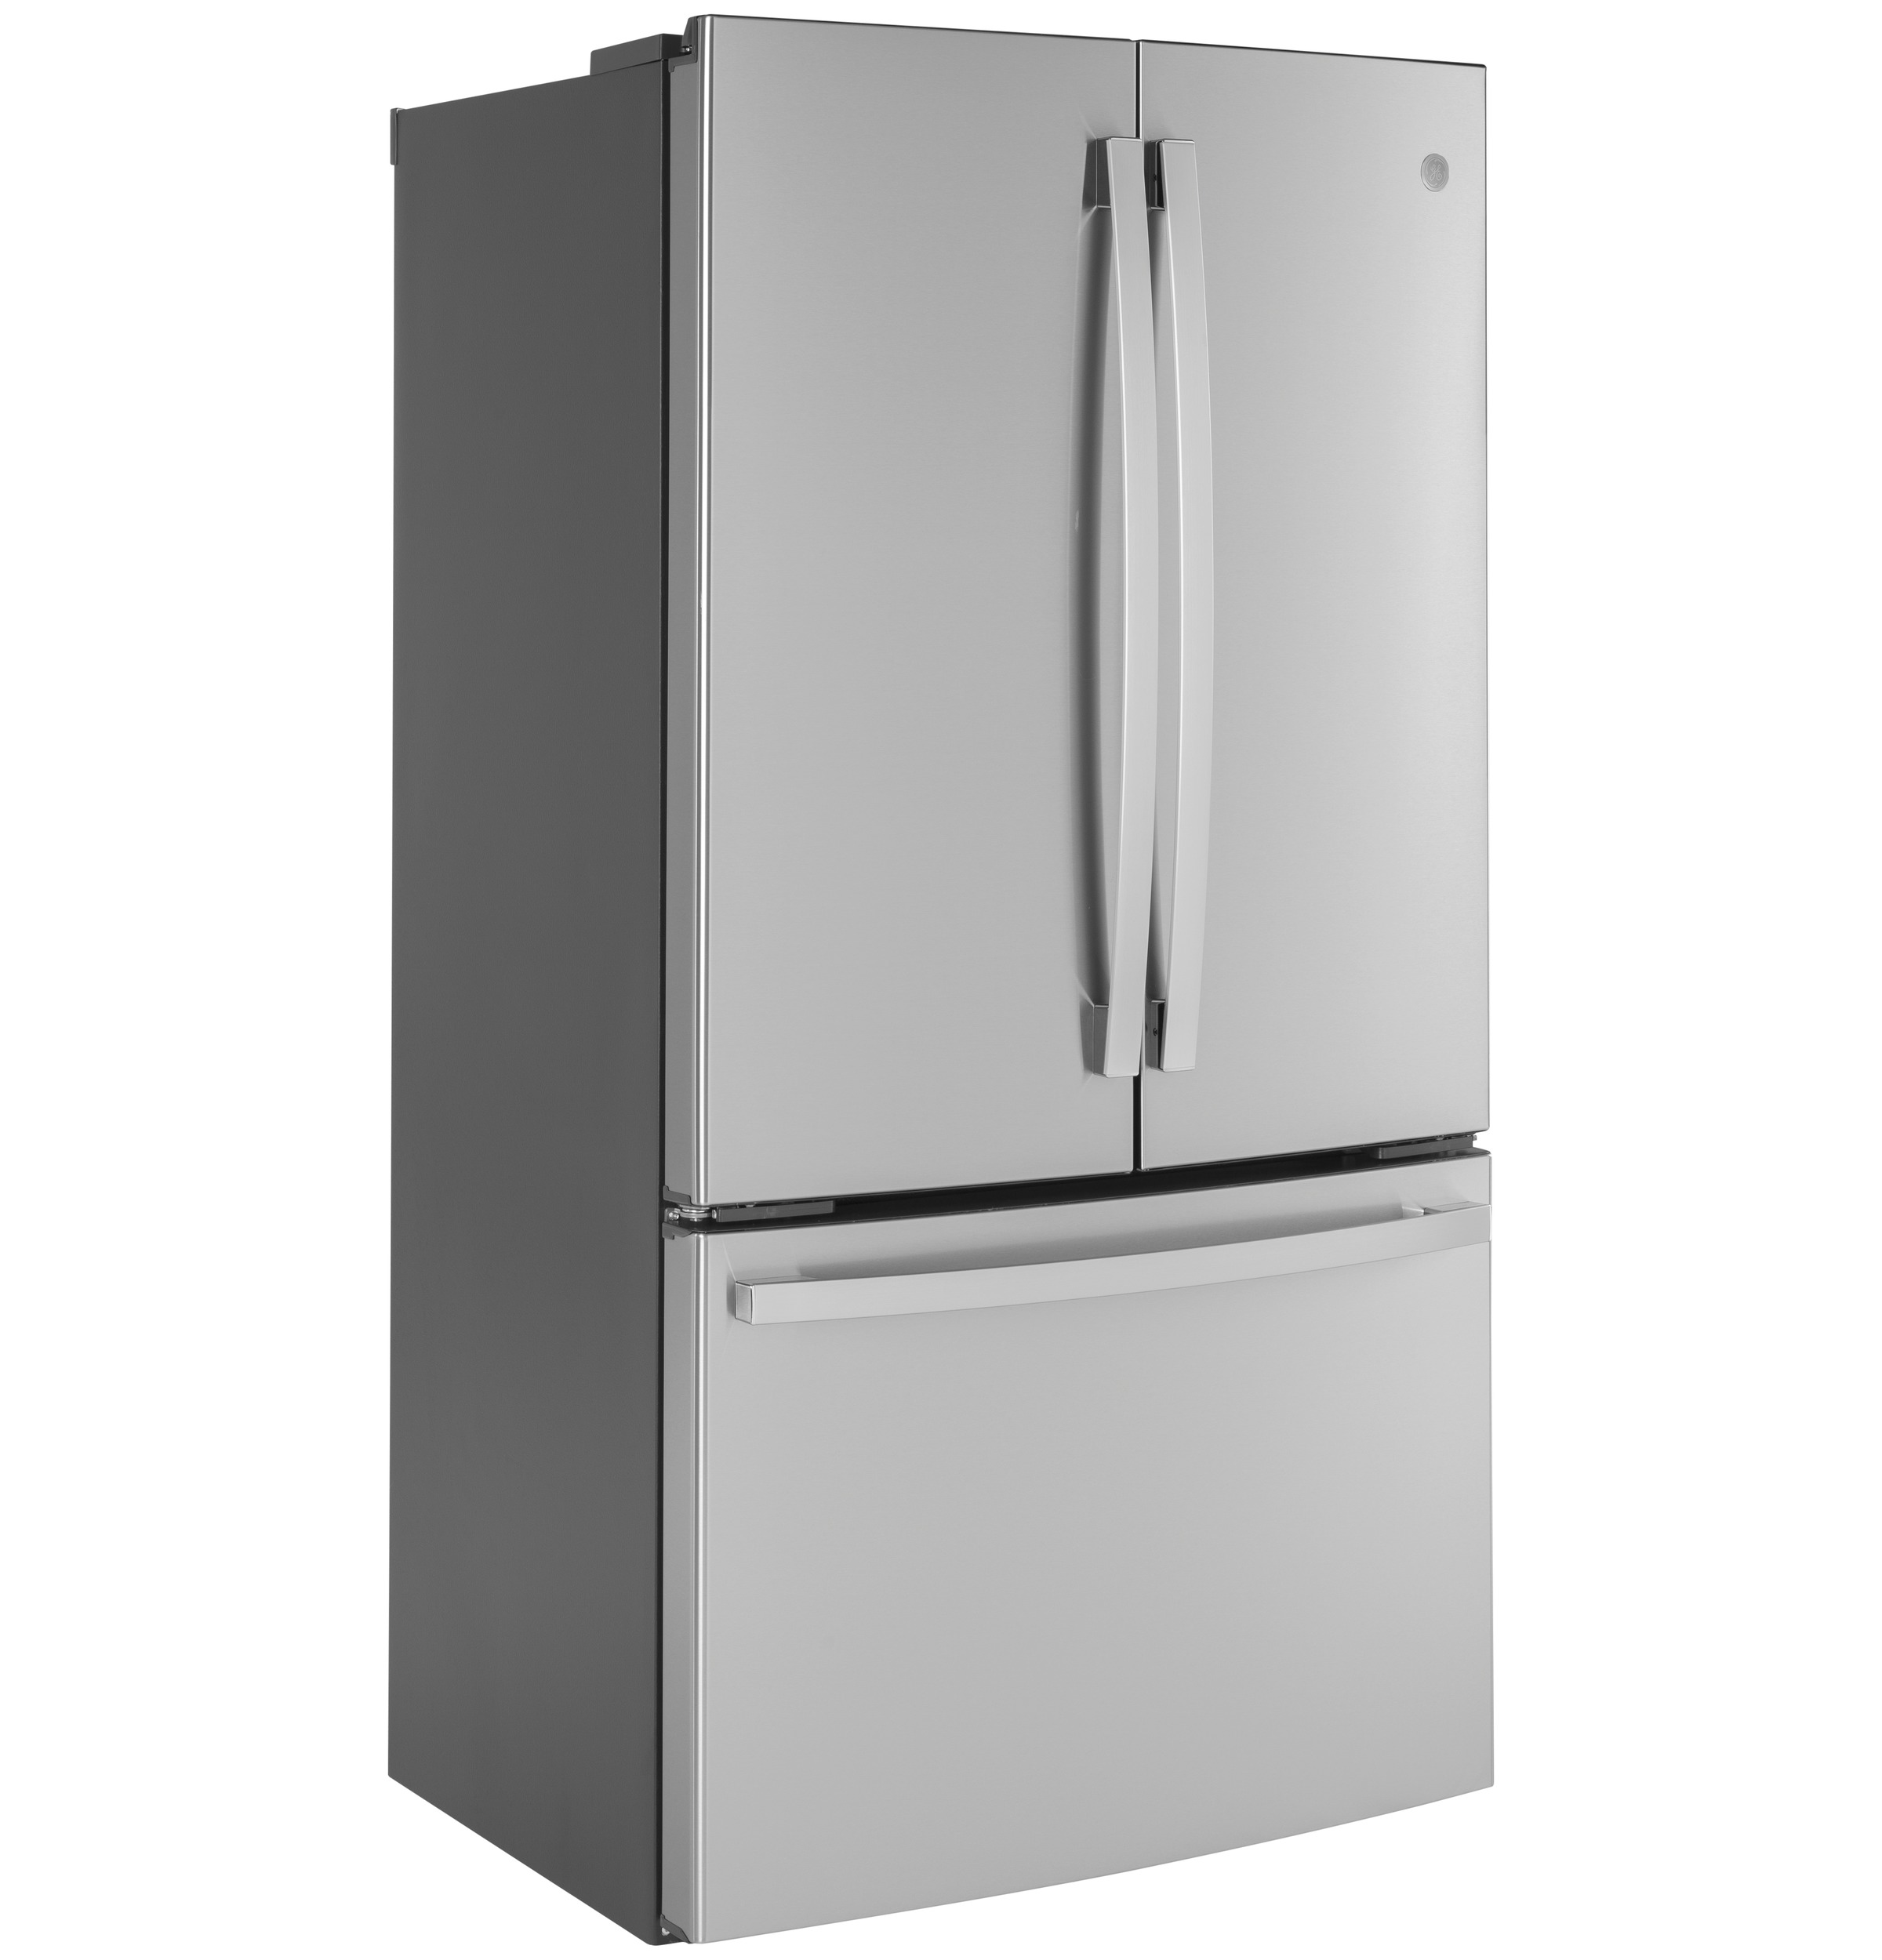 Model: GWE23GYNFS | GE GE® ENERGY STAR® 23.1 Cu. Ft. Counter-Depth French-Door Refrigerator